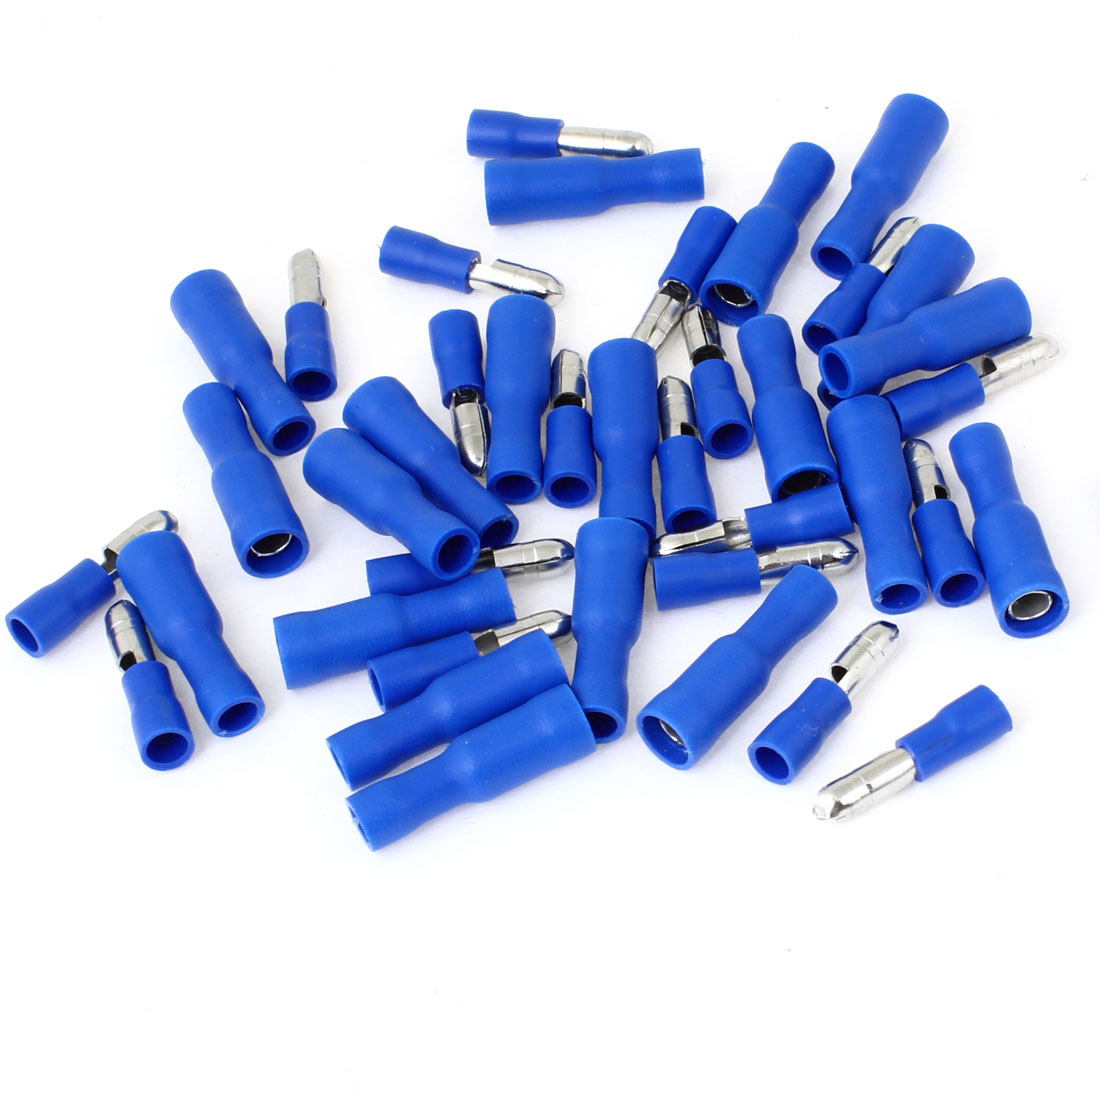 20 Pcs FRD2-156 Blue Male Female Type Fully Insulated Sleeve Crimp Terminals